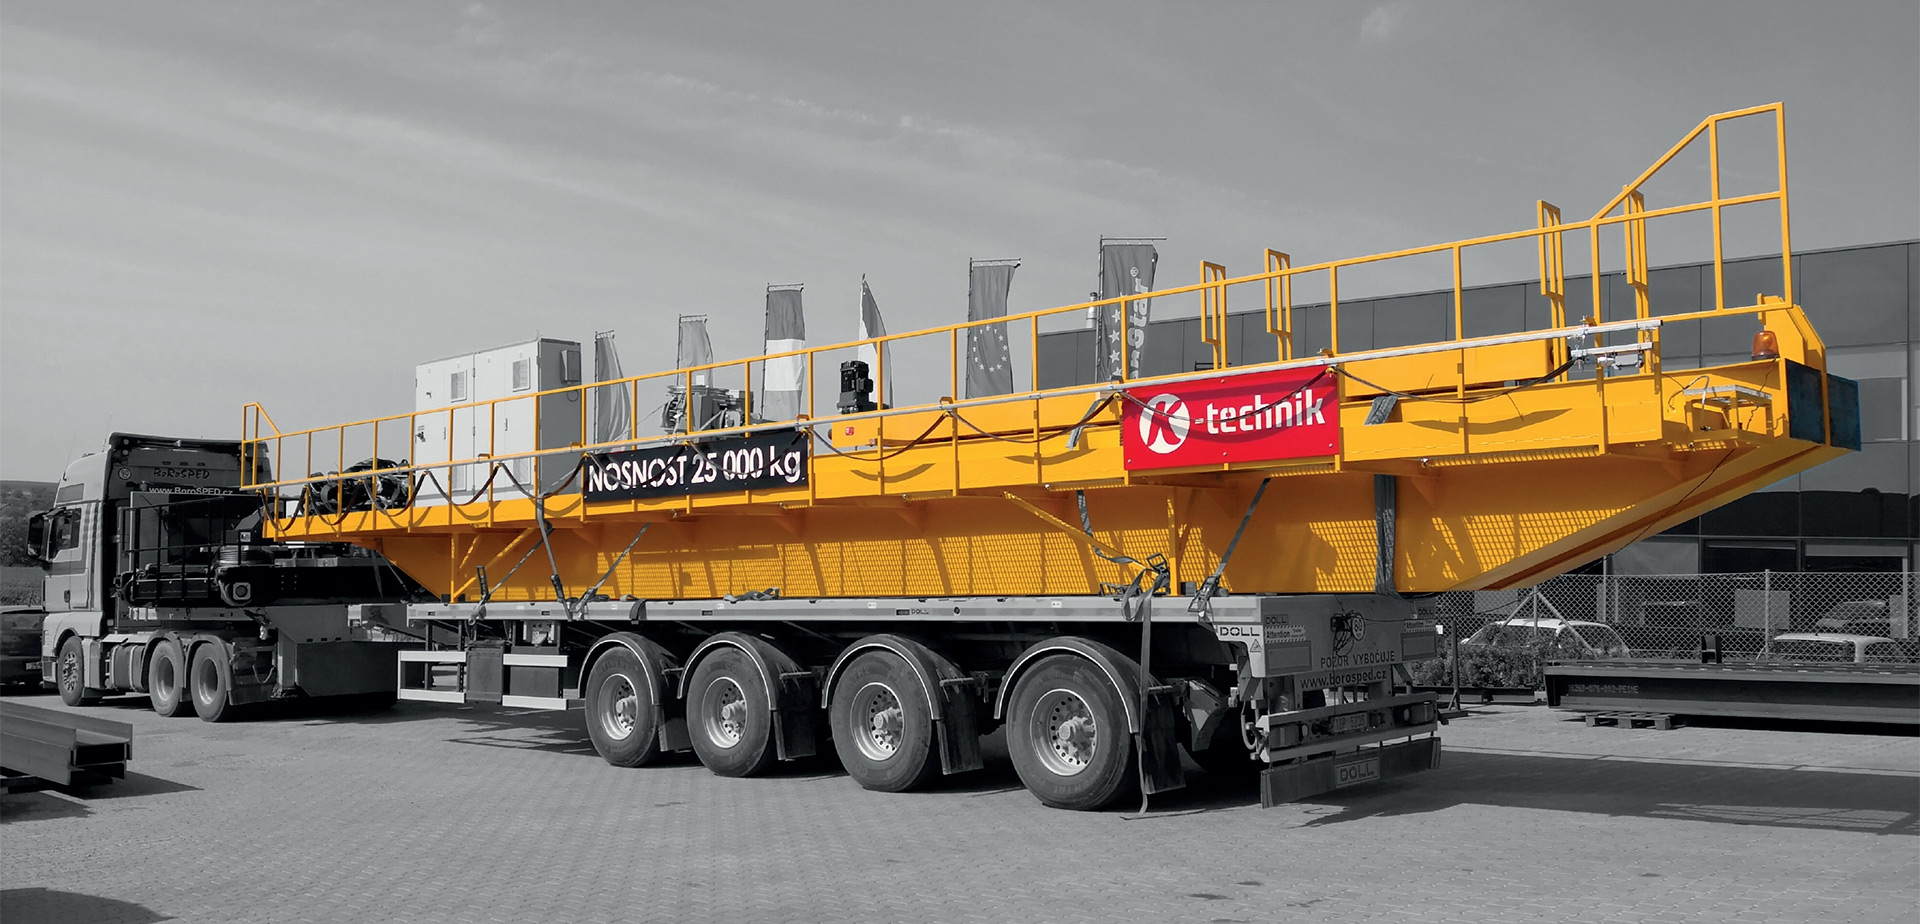 Cranes and handling equipment